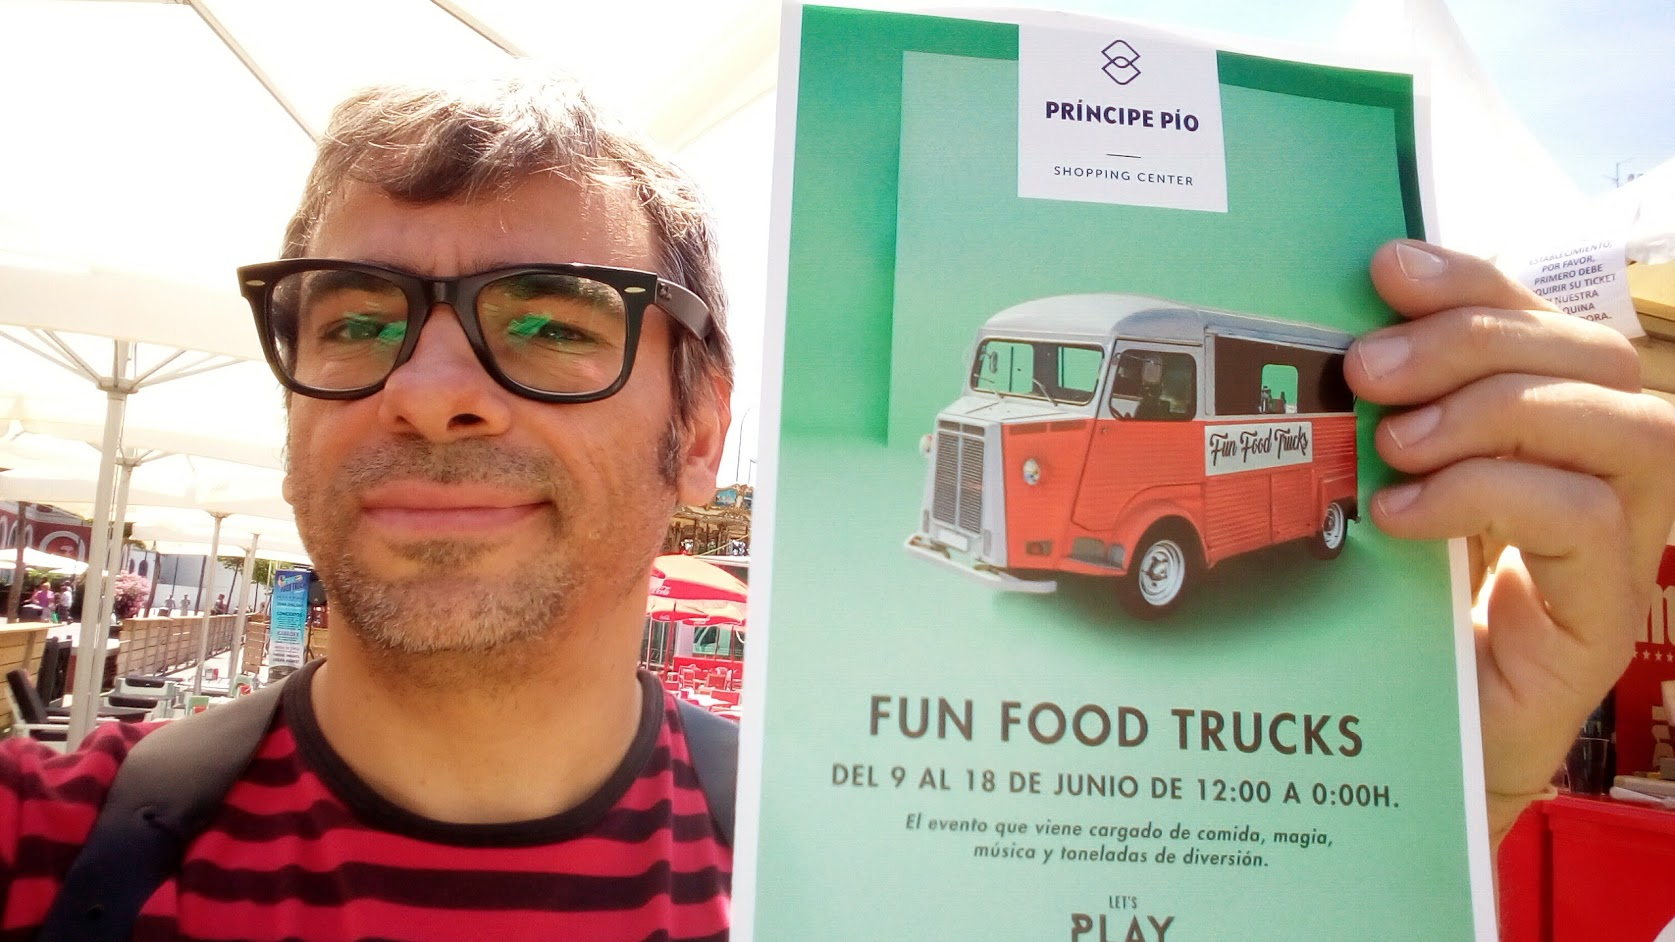 mago Alfonso V sujetando cartel de evento fun food trucks 2017